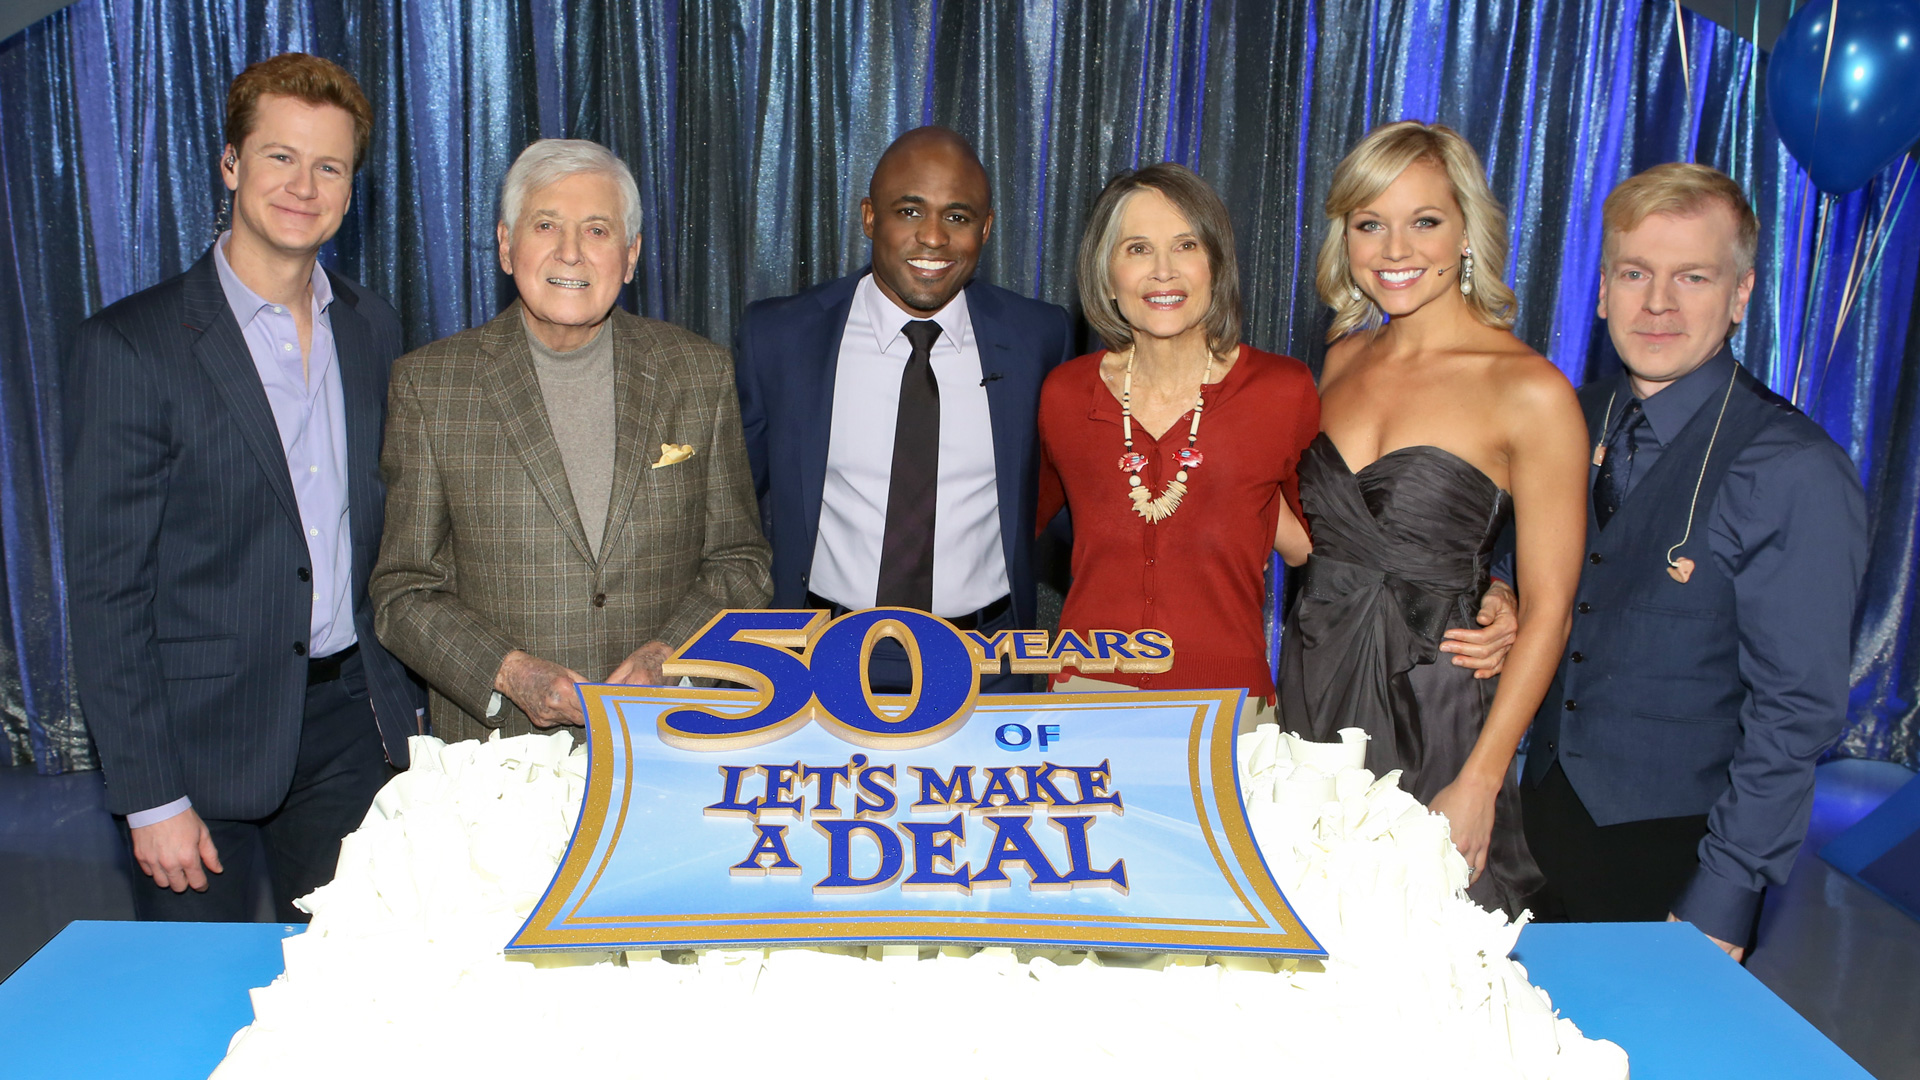 Monty helped ring in Let's Make A Deal's 50th anniversary.